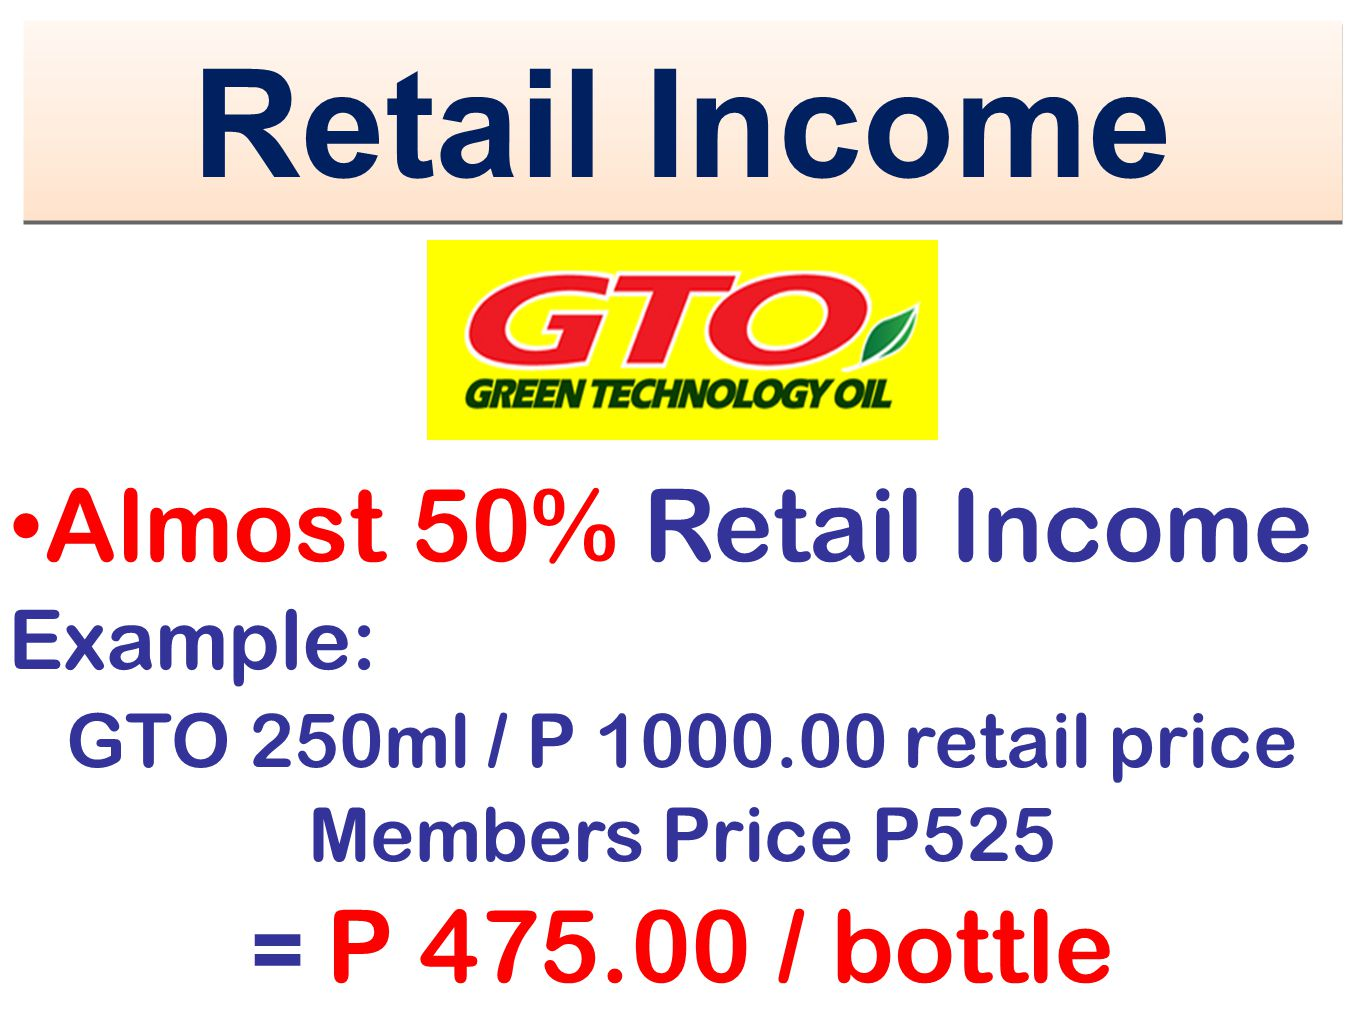 Retail Income Almost 50% Retail Income Example: GTO 250ml / P 1000.00 retail price Members Price P525 = P 475.00 / bottle